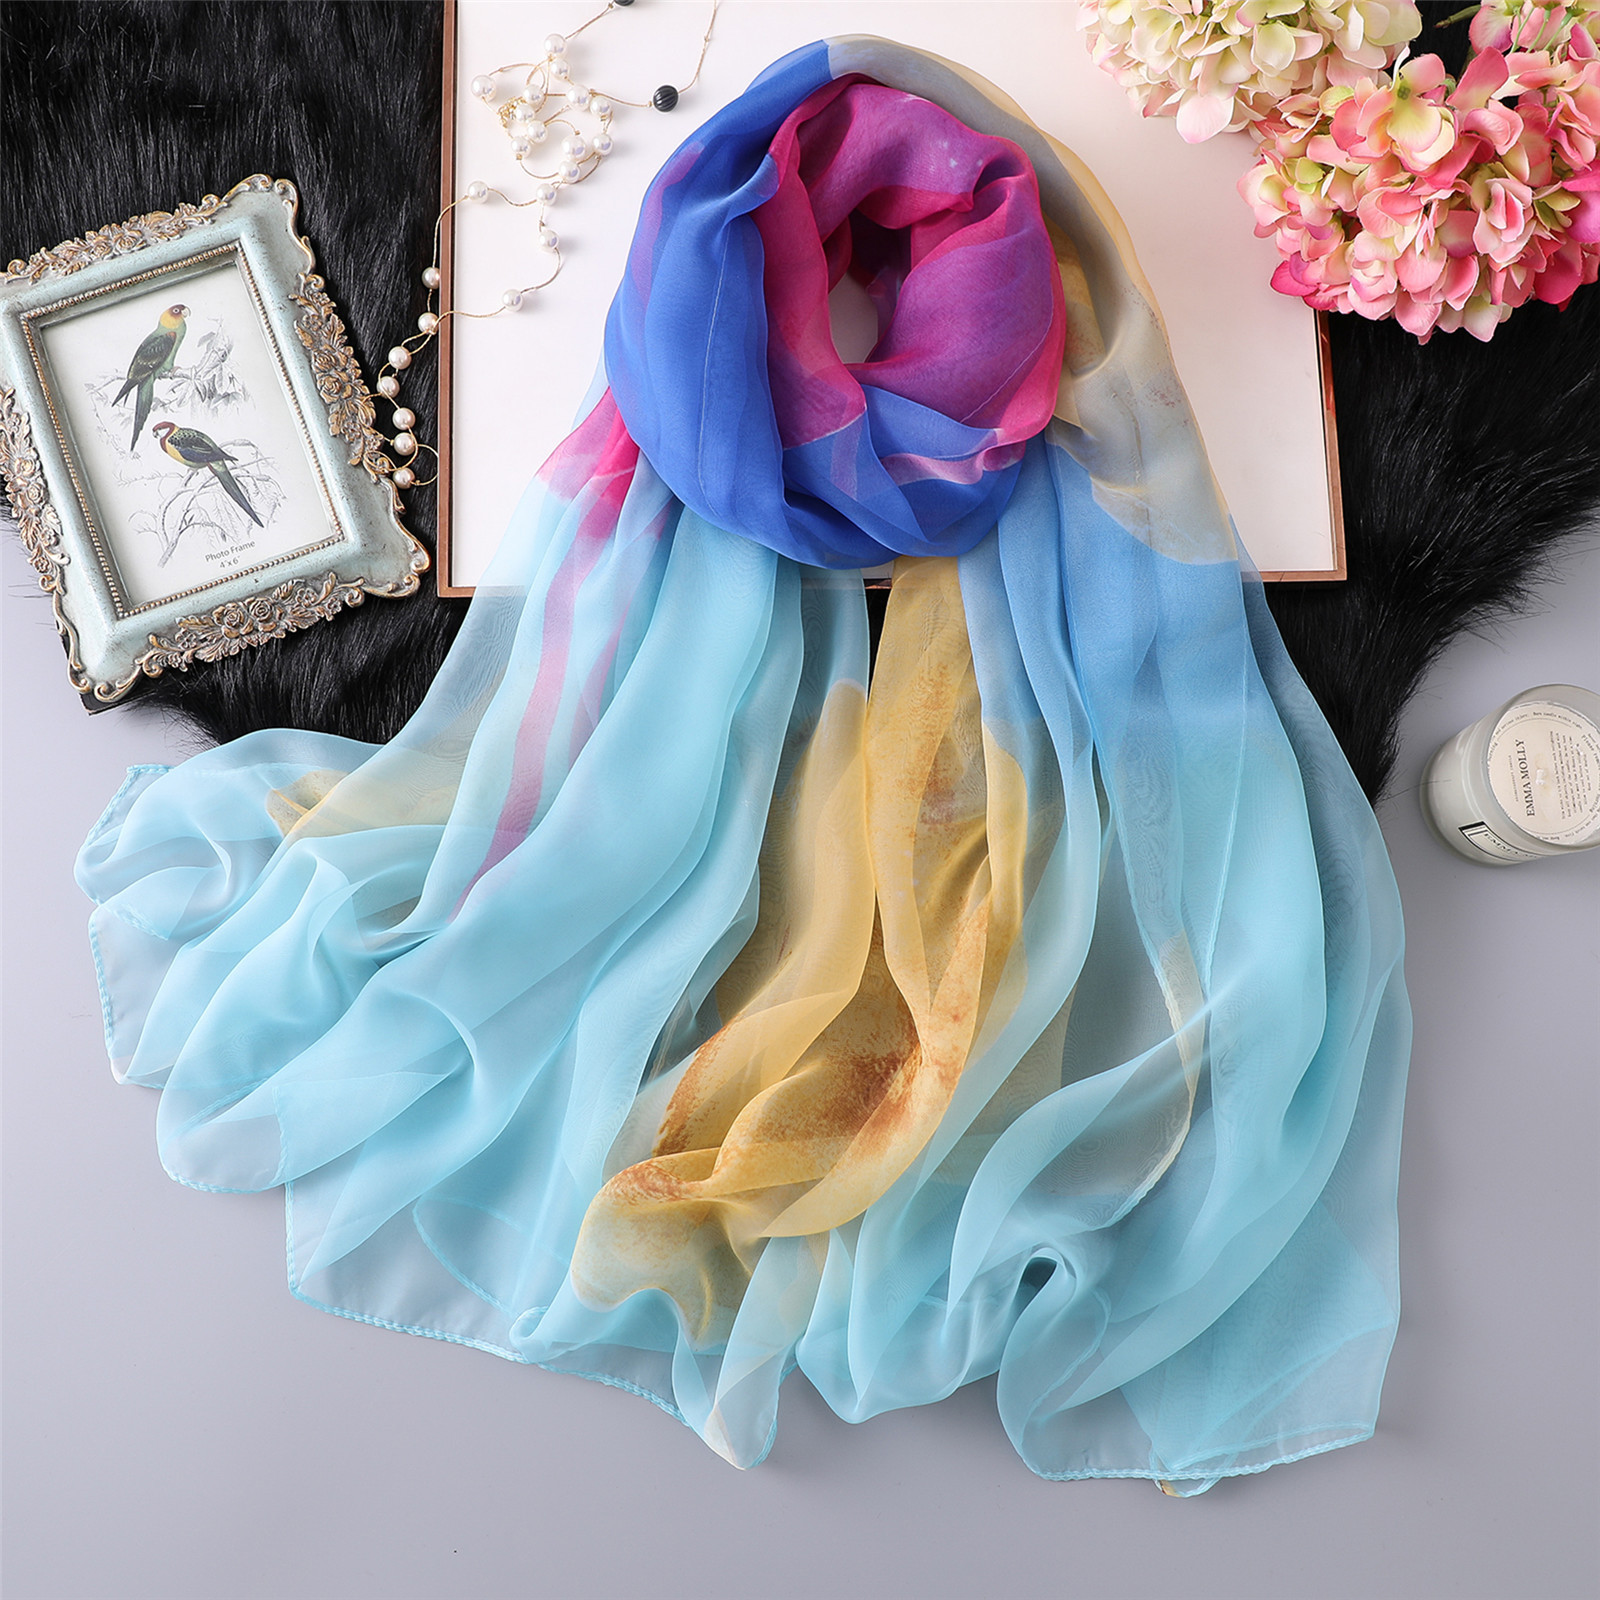 2019 Fashion Silk   Scarf   Women luxury brand thin print foulard femme Silky   Scarves     Wraps   Lady's shawl high quality chiffon hijab